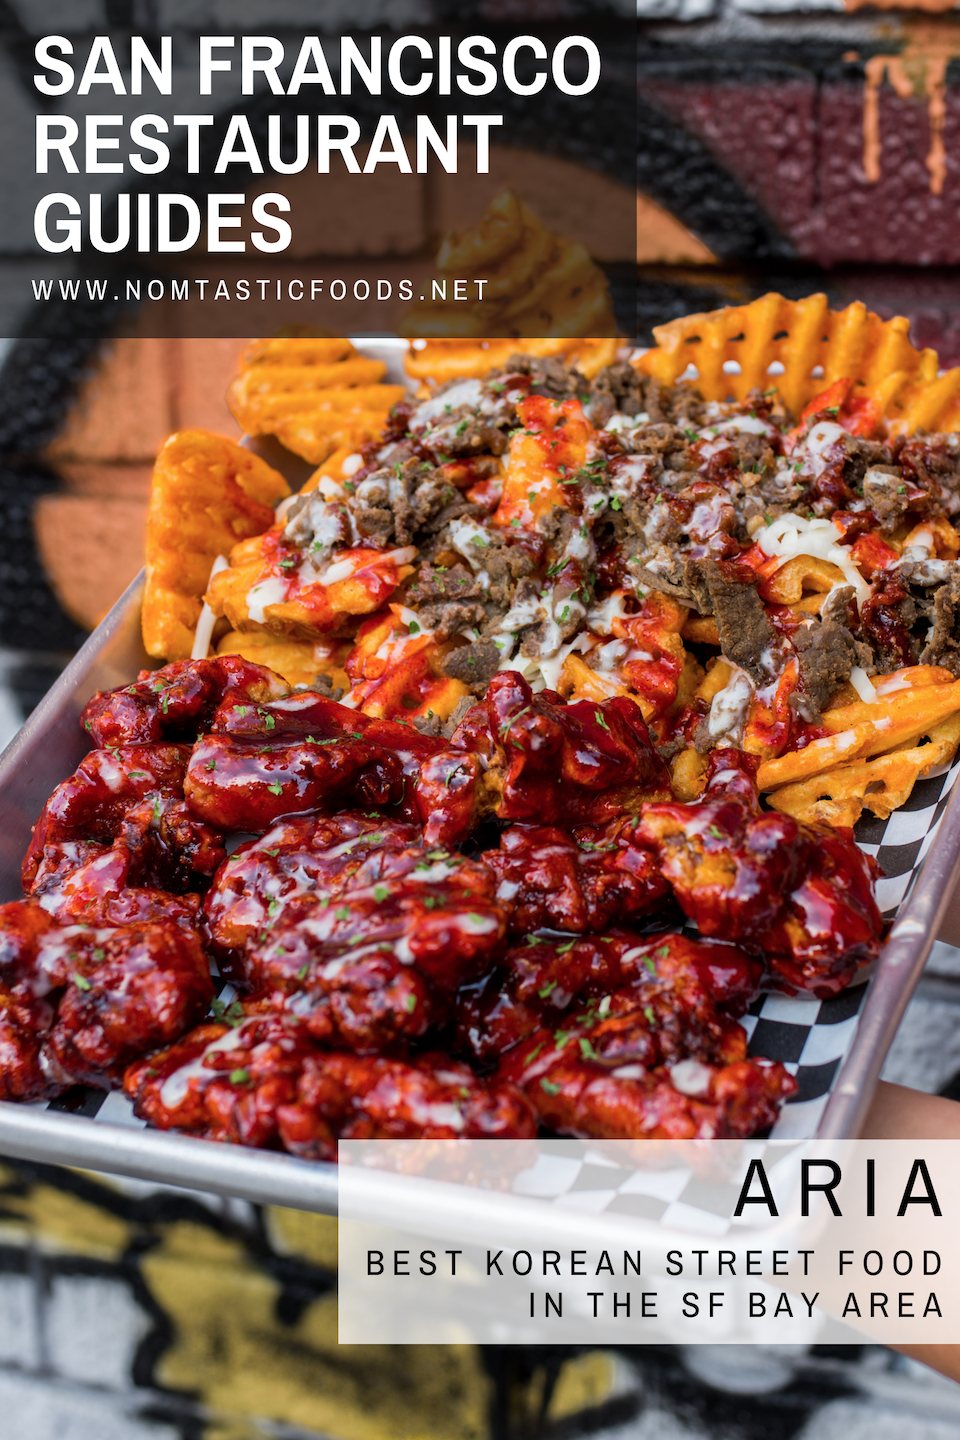 Aria is the best Korean street food spot in the San Francisco Bay